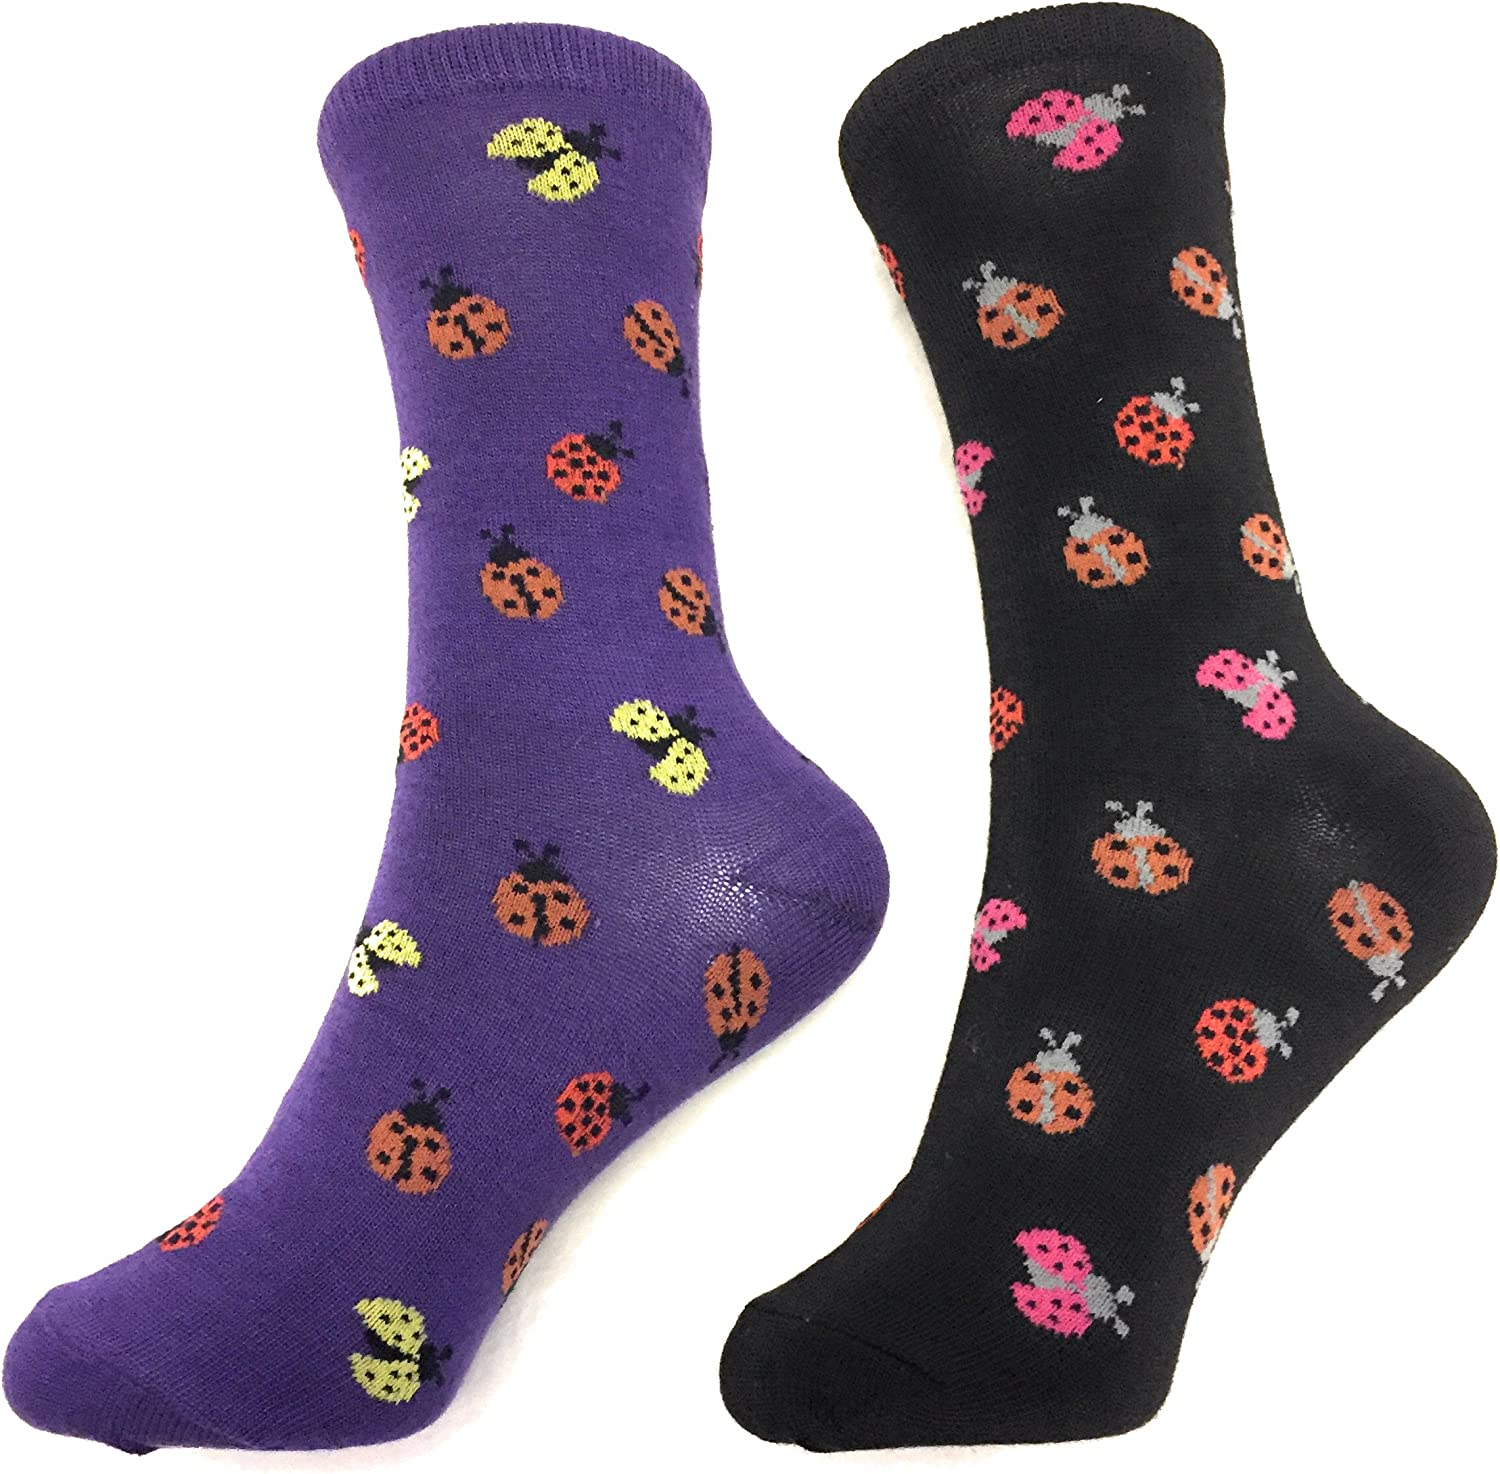 2 Pack Socks Lady Bugs Pattern Novelty Crew Socks Fun Fashion Casual Comfy Cozy (2 Pack)